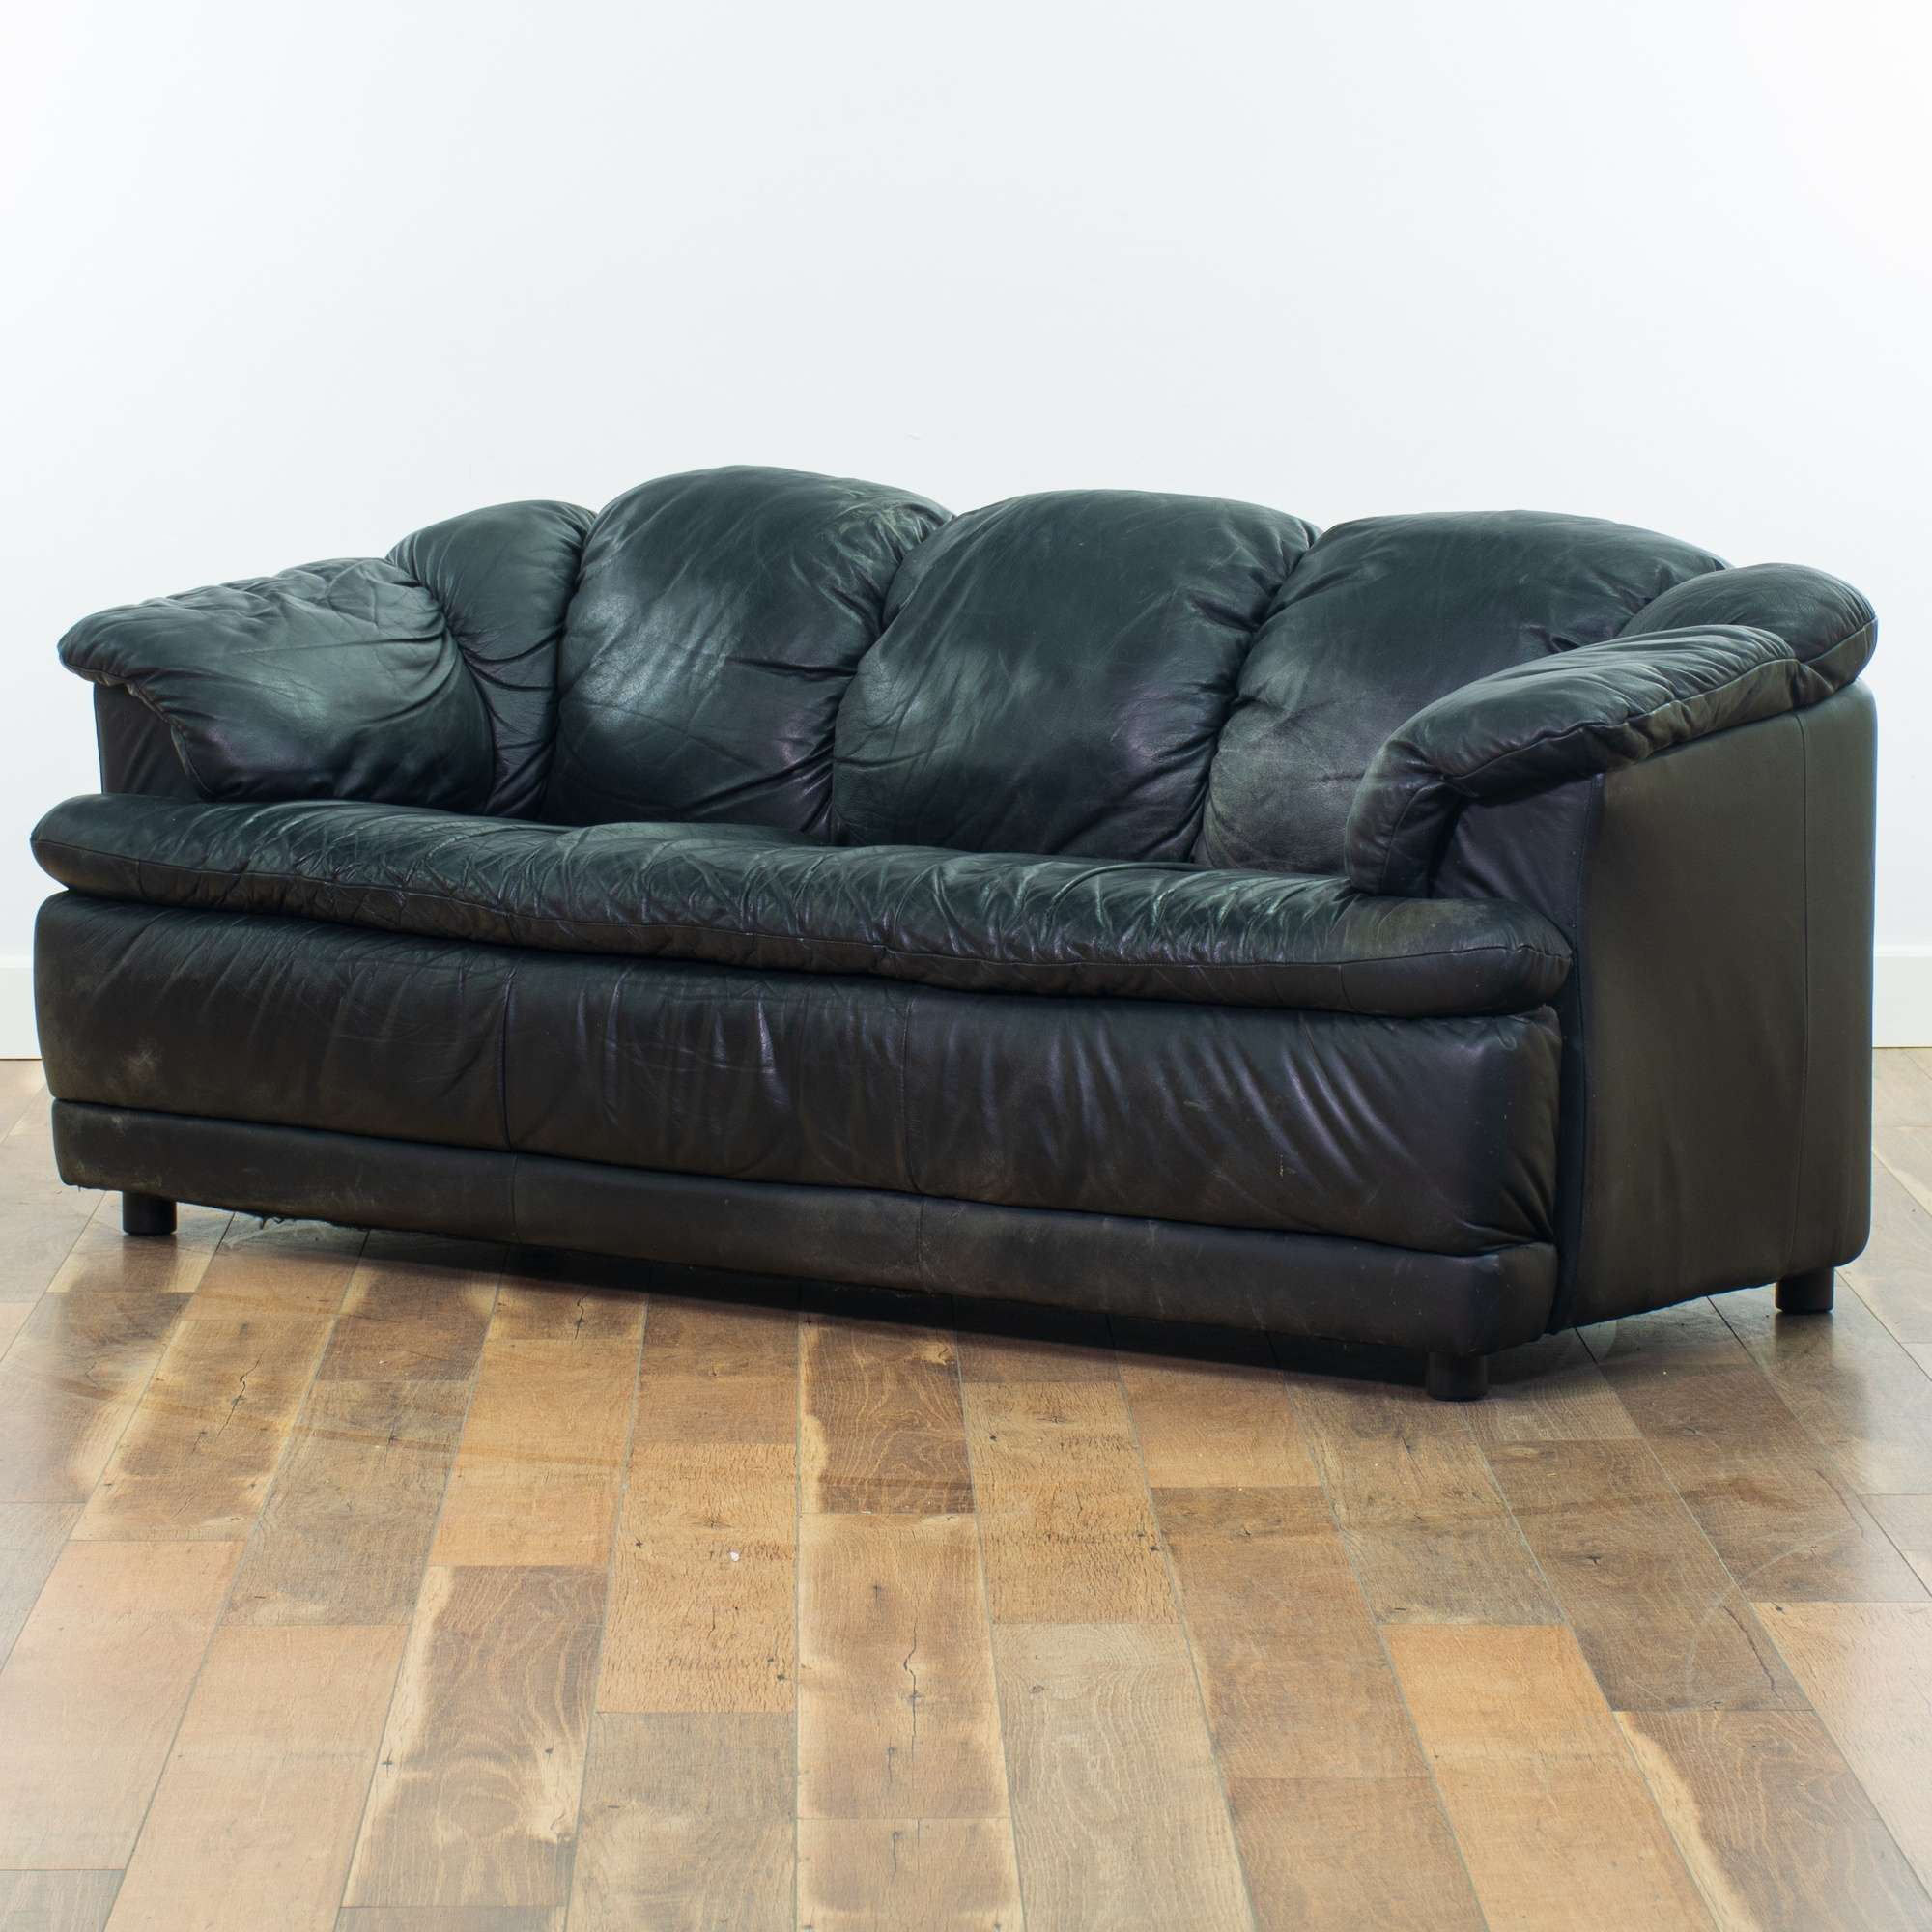 Overstuffed Black Leather Sofa | Loveseat Vintage Furniture San Diego